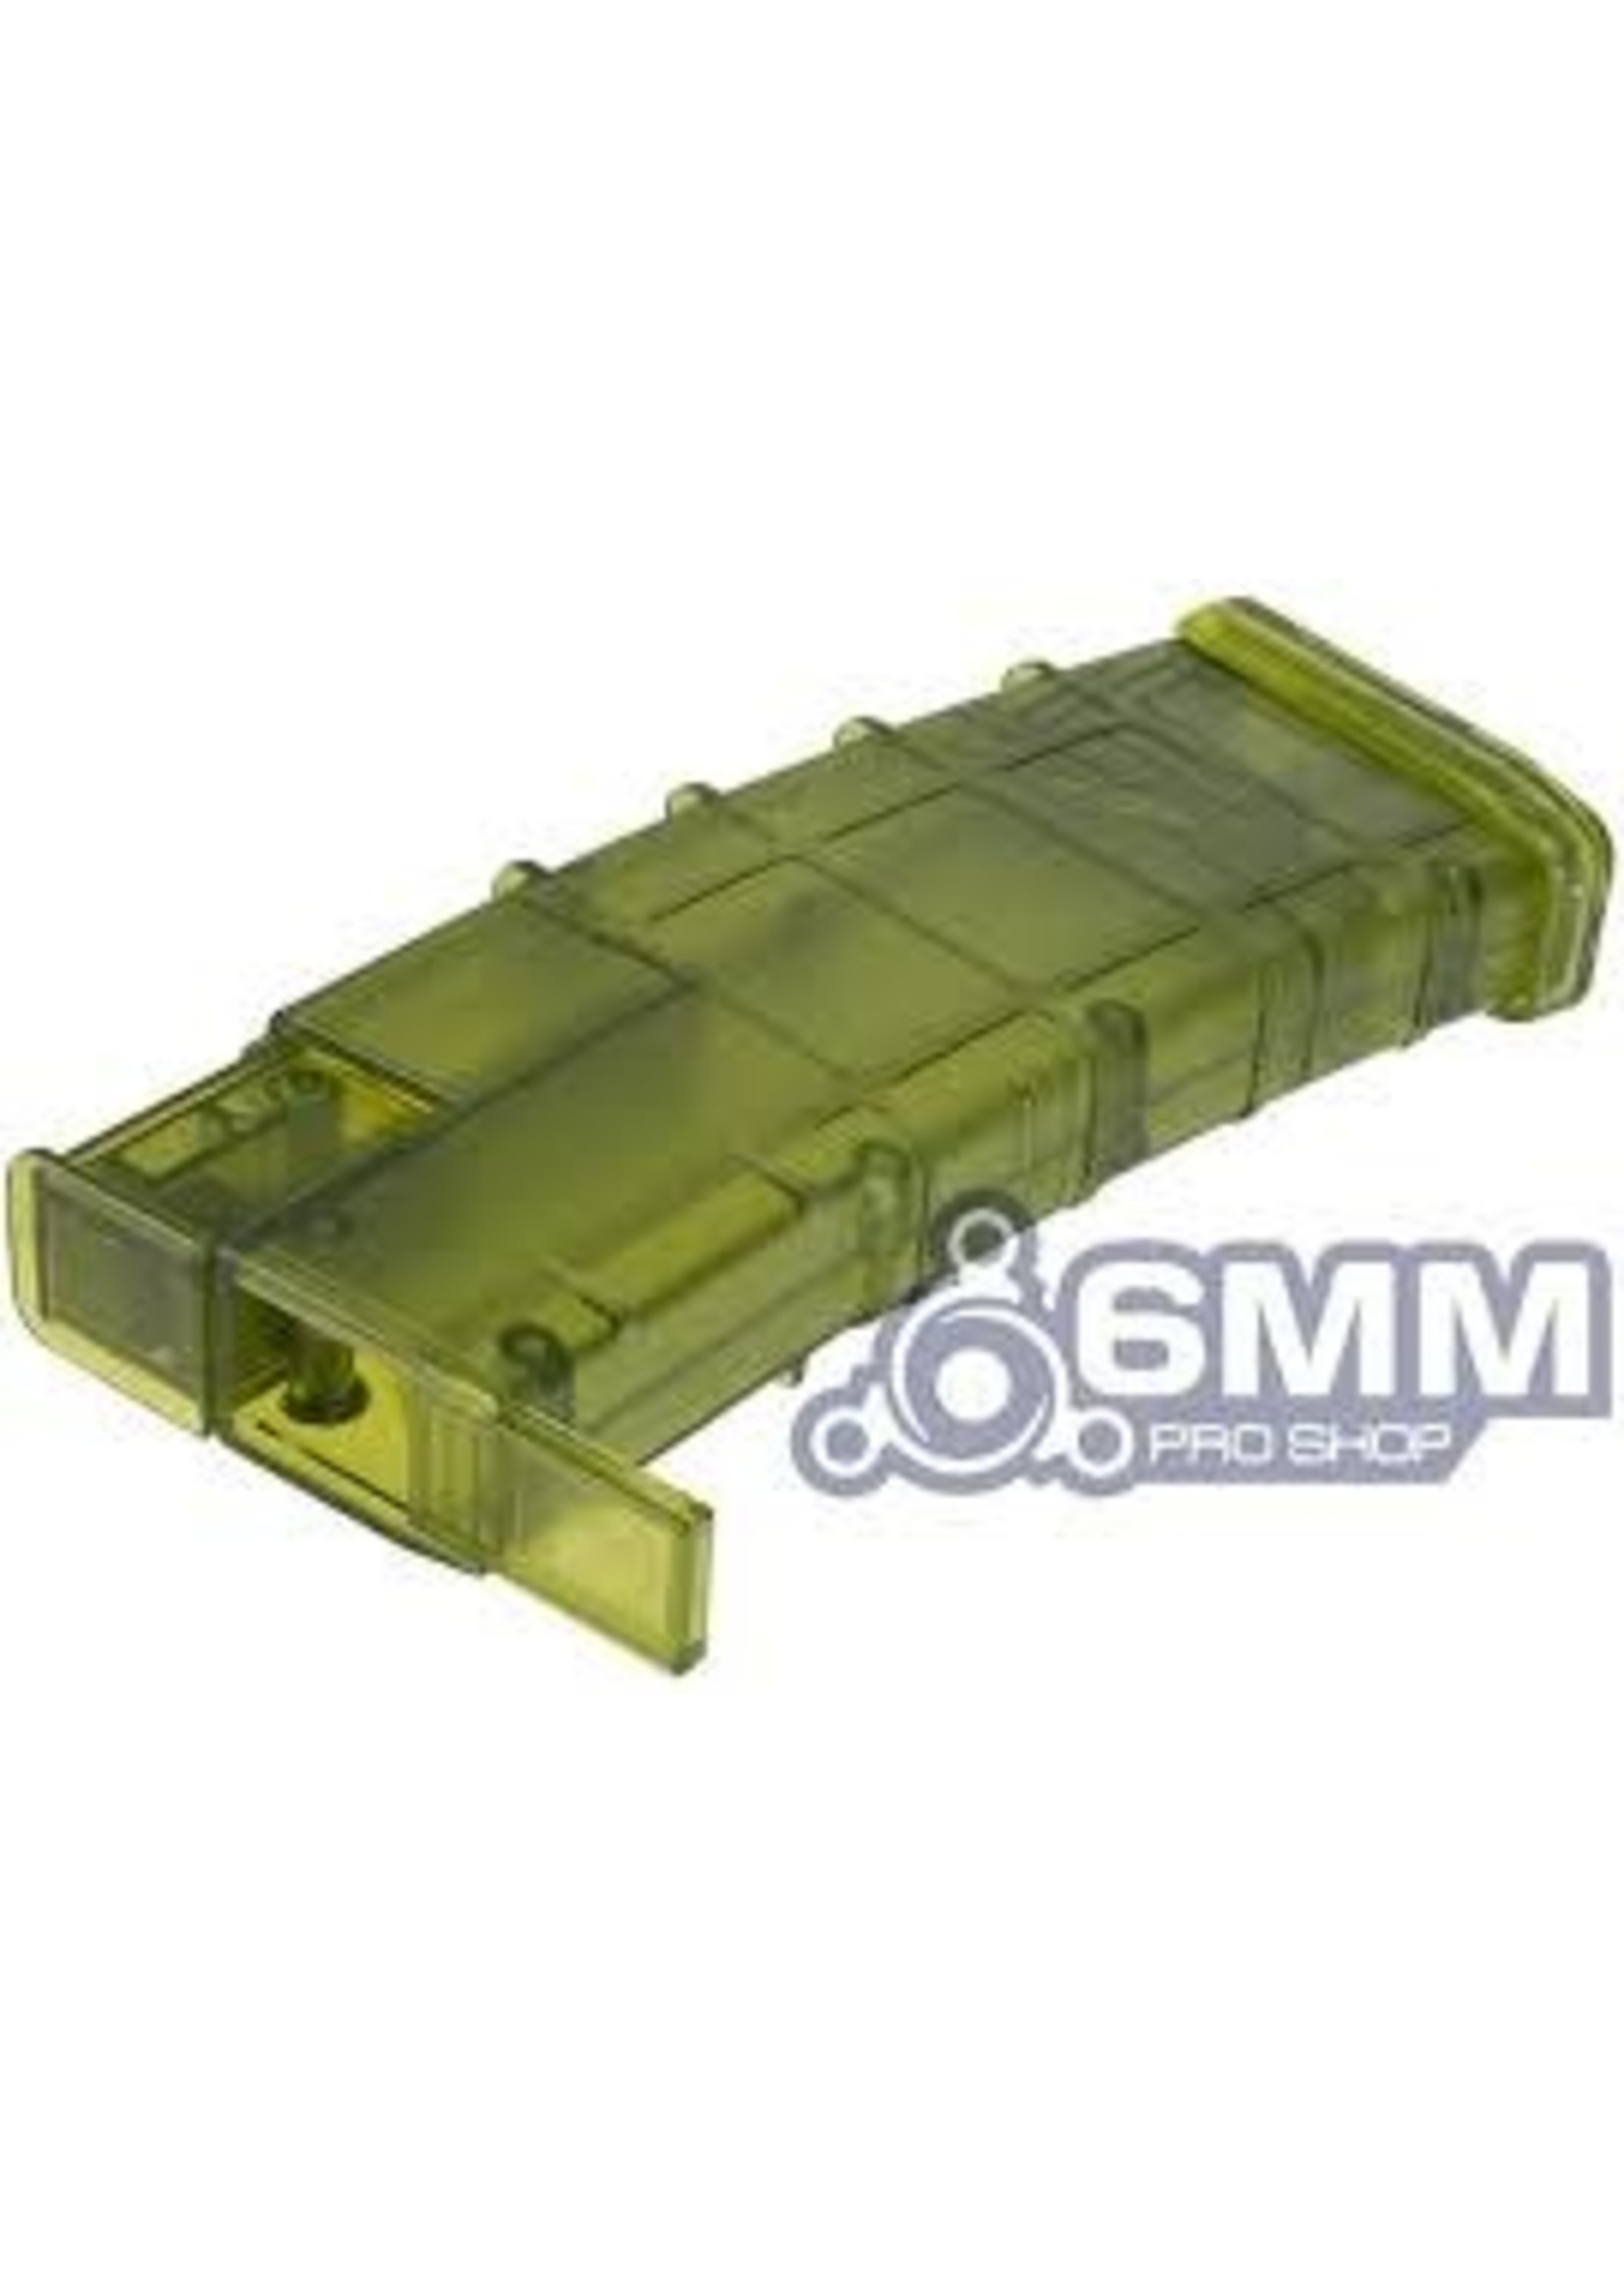 6mm 6MM LARGE SPEED LOADER M4 MAG STYLE